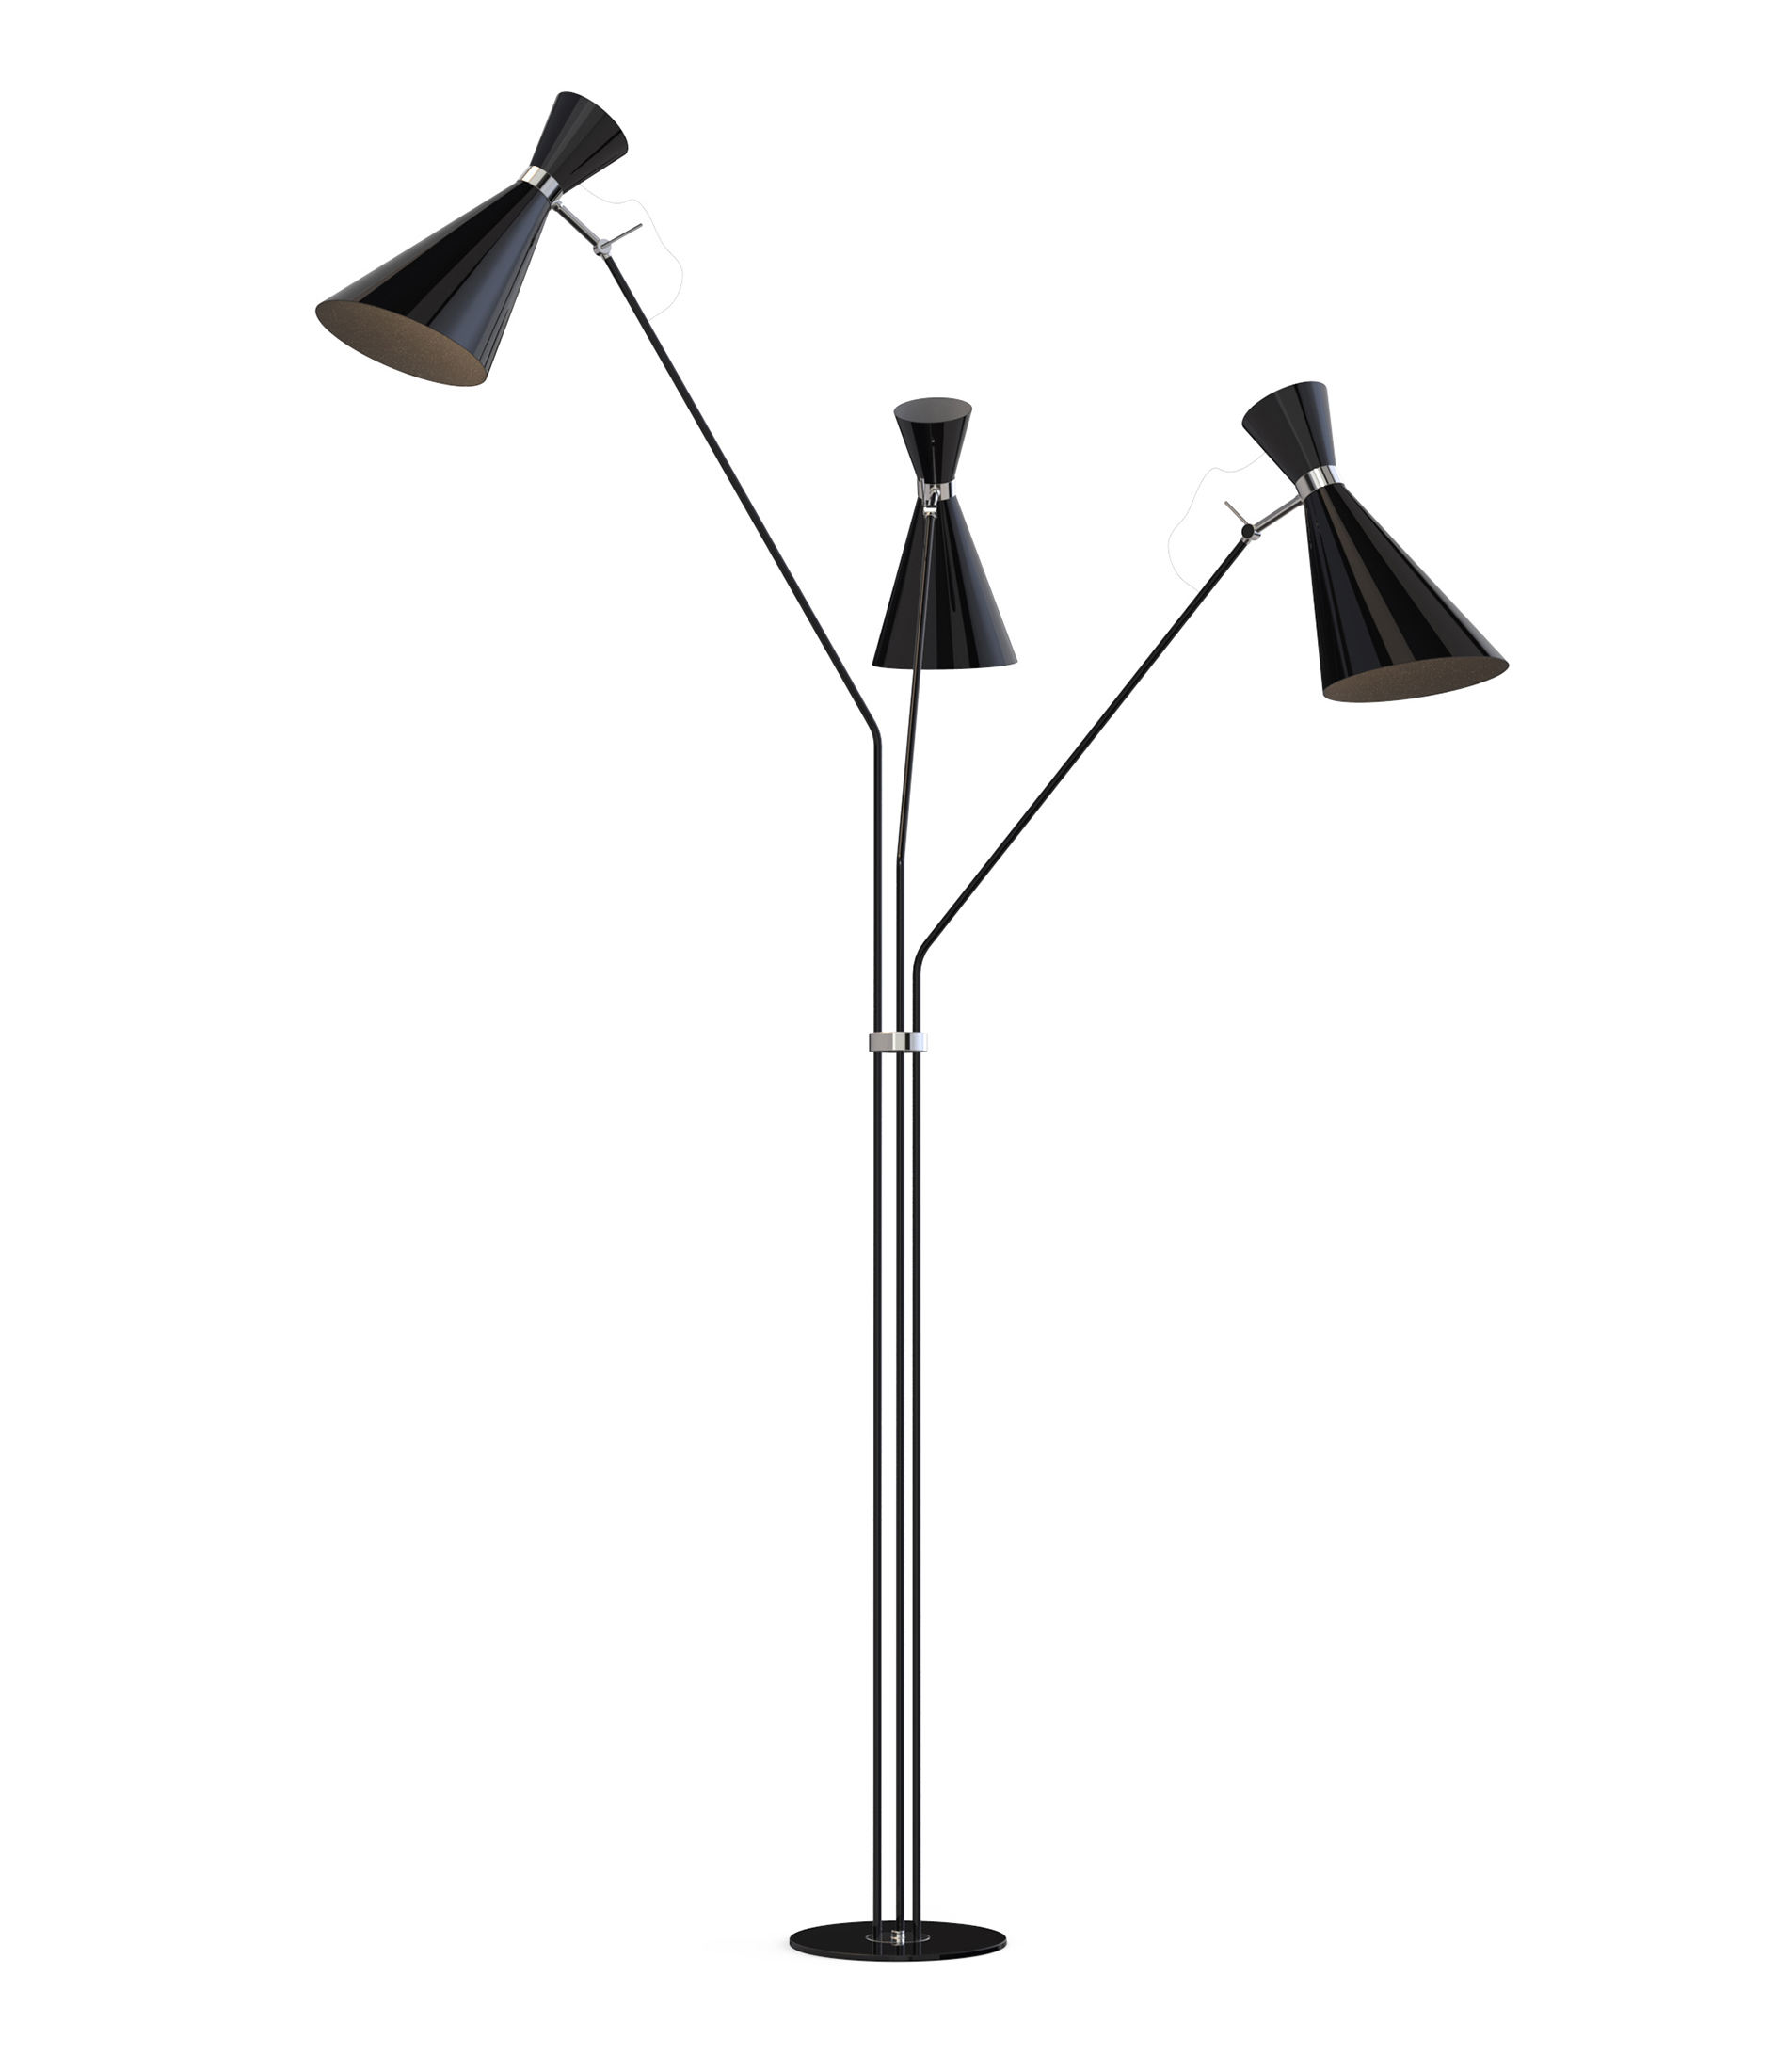 Simone Floor Lamp simone floor lamp Enter In The Jazzy World  Of Simone Floor Lamp! EnterIn The Jazzy World Of Simone Floor Lamp4